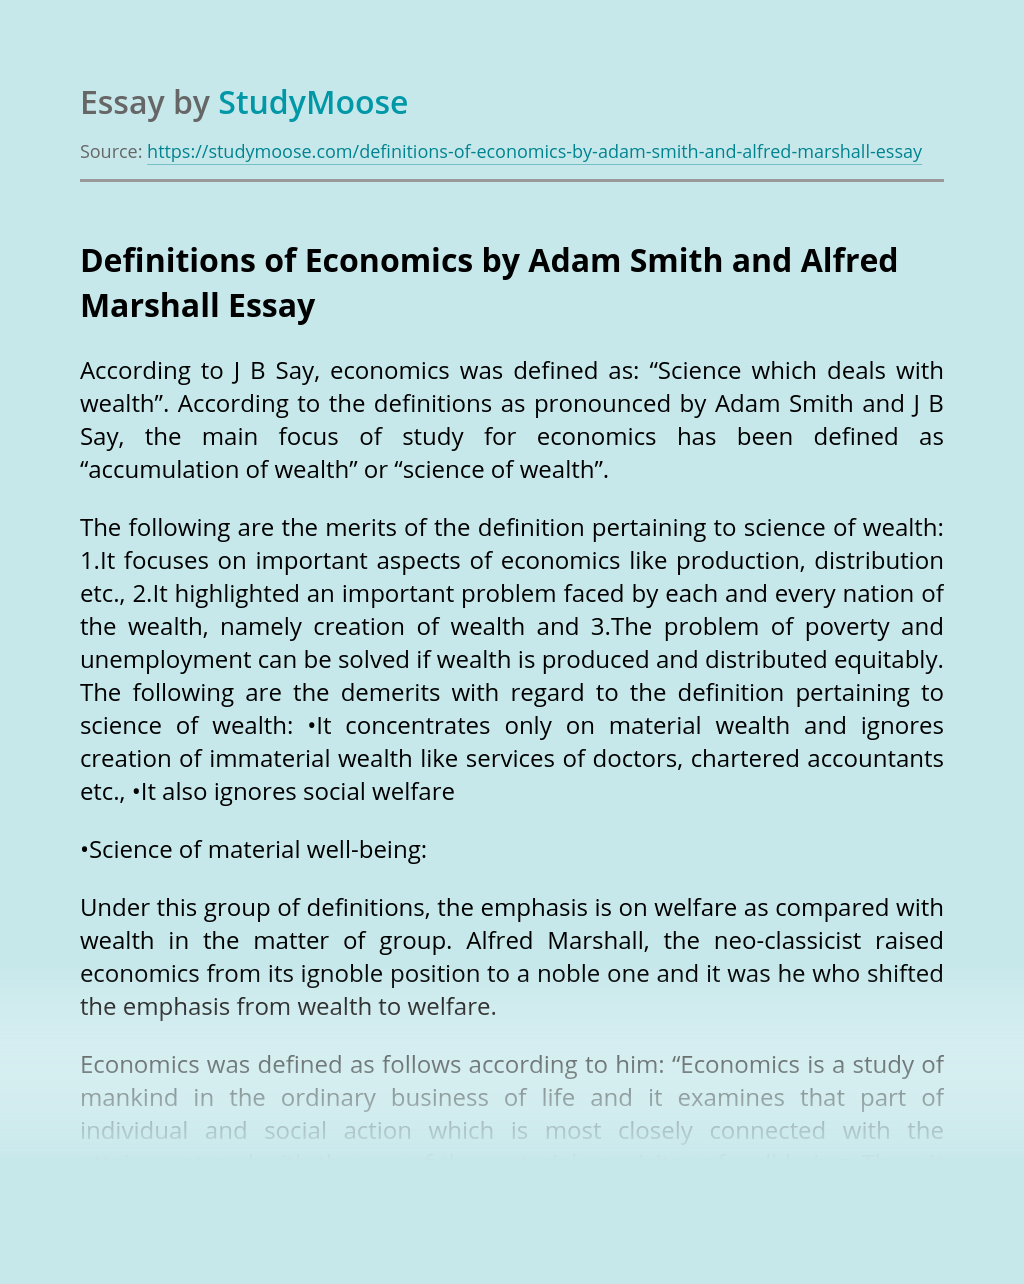 Definitions of Economics by Adam Smith and Alfred Marshall